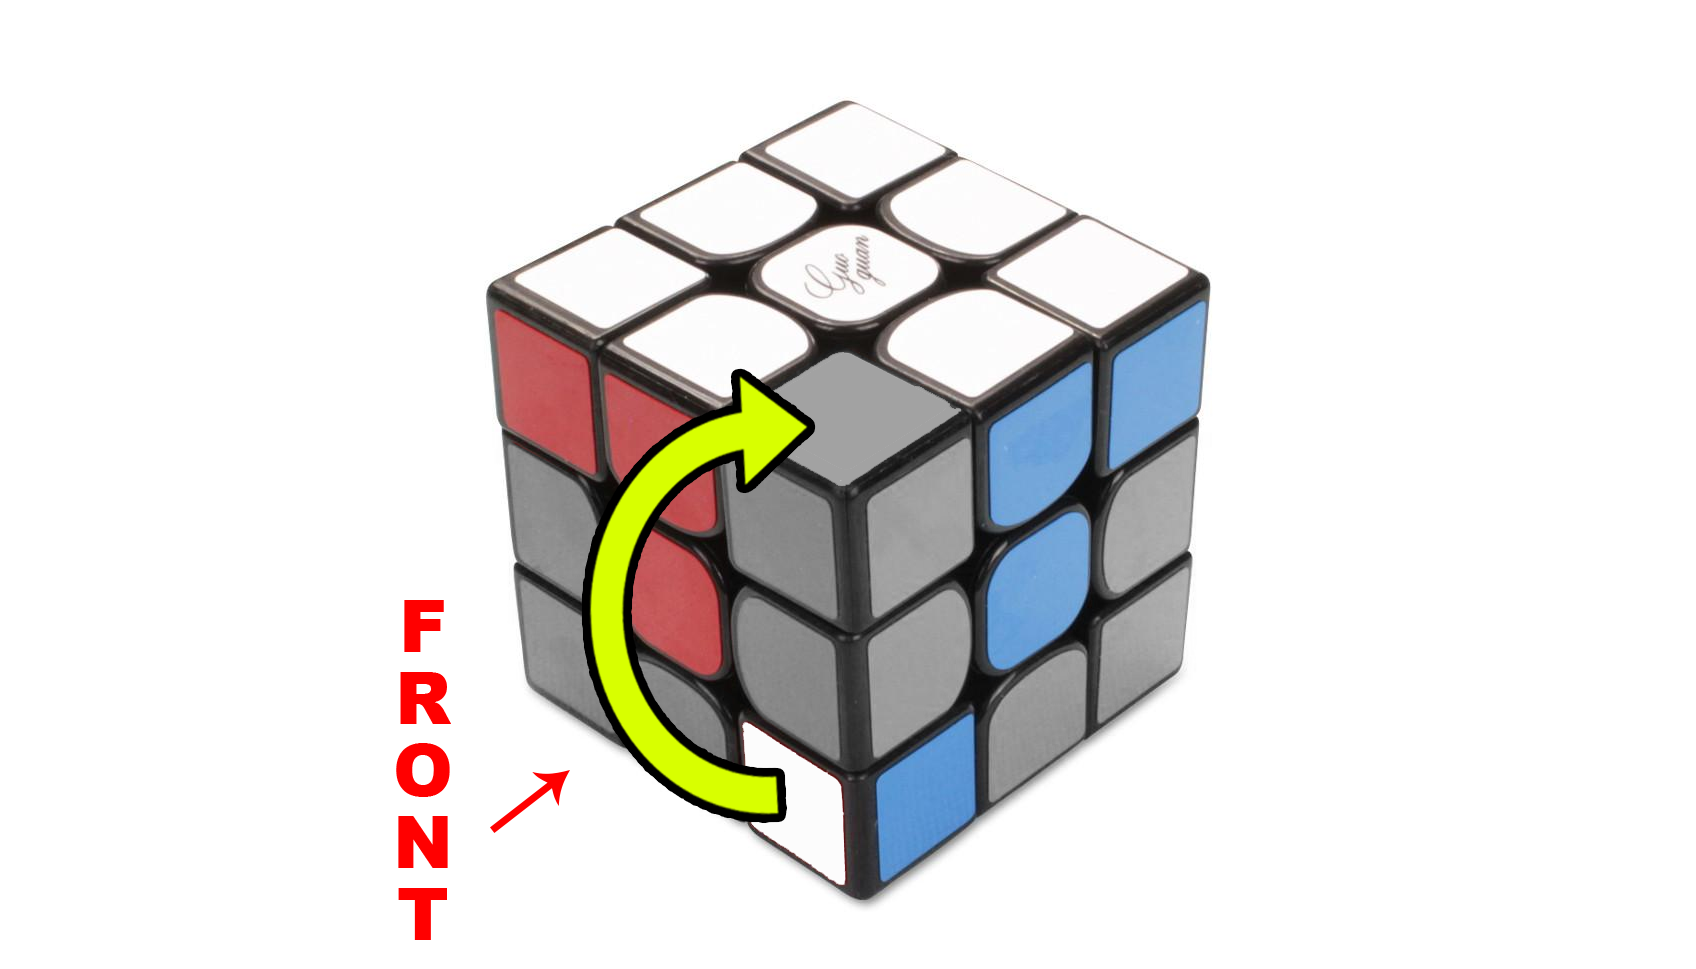 How to solve a Rubik's 3x3 - Step 2 - The Corners - Step 2a